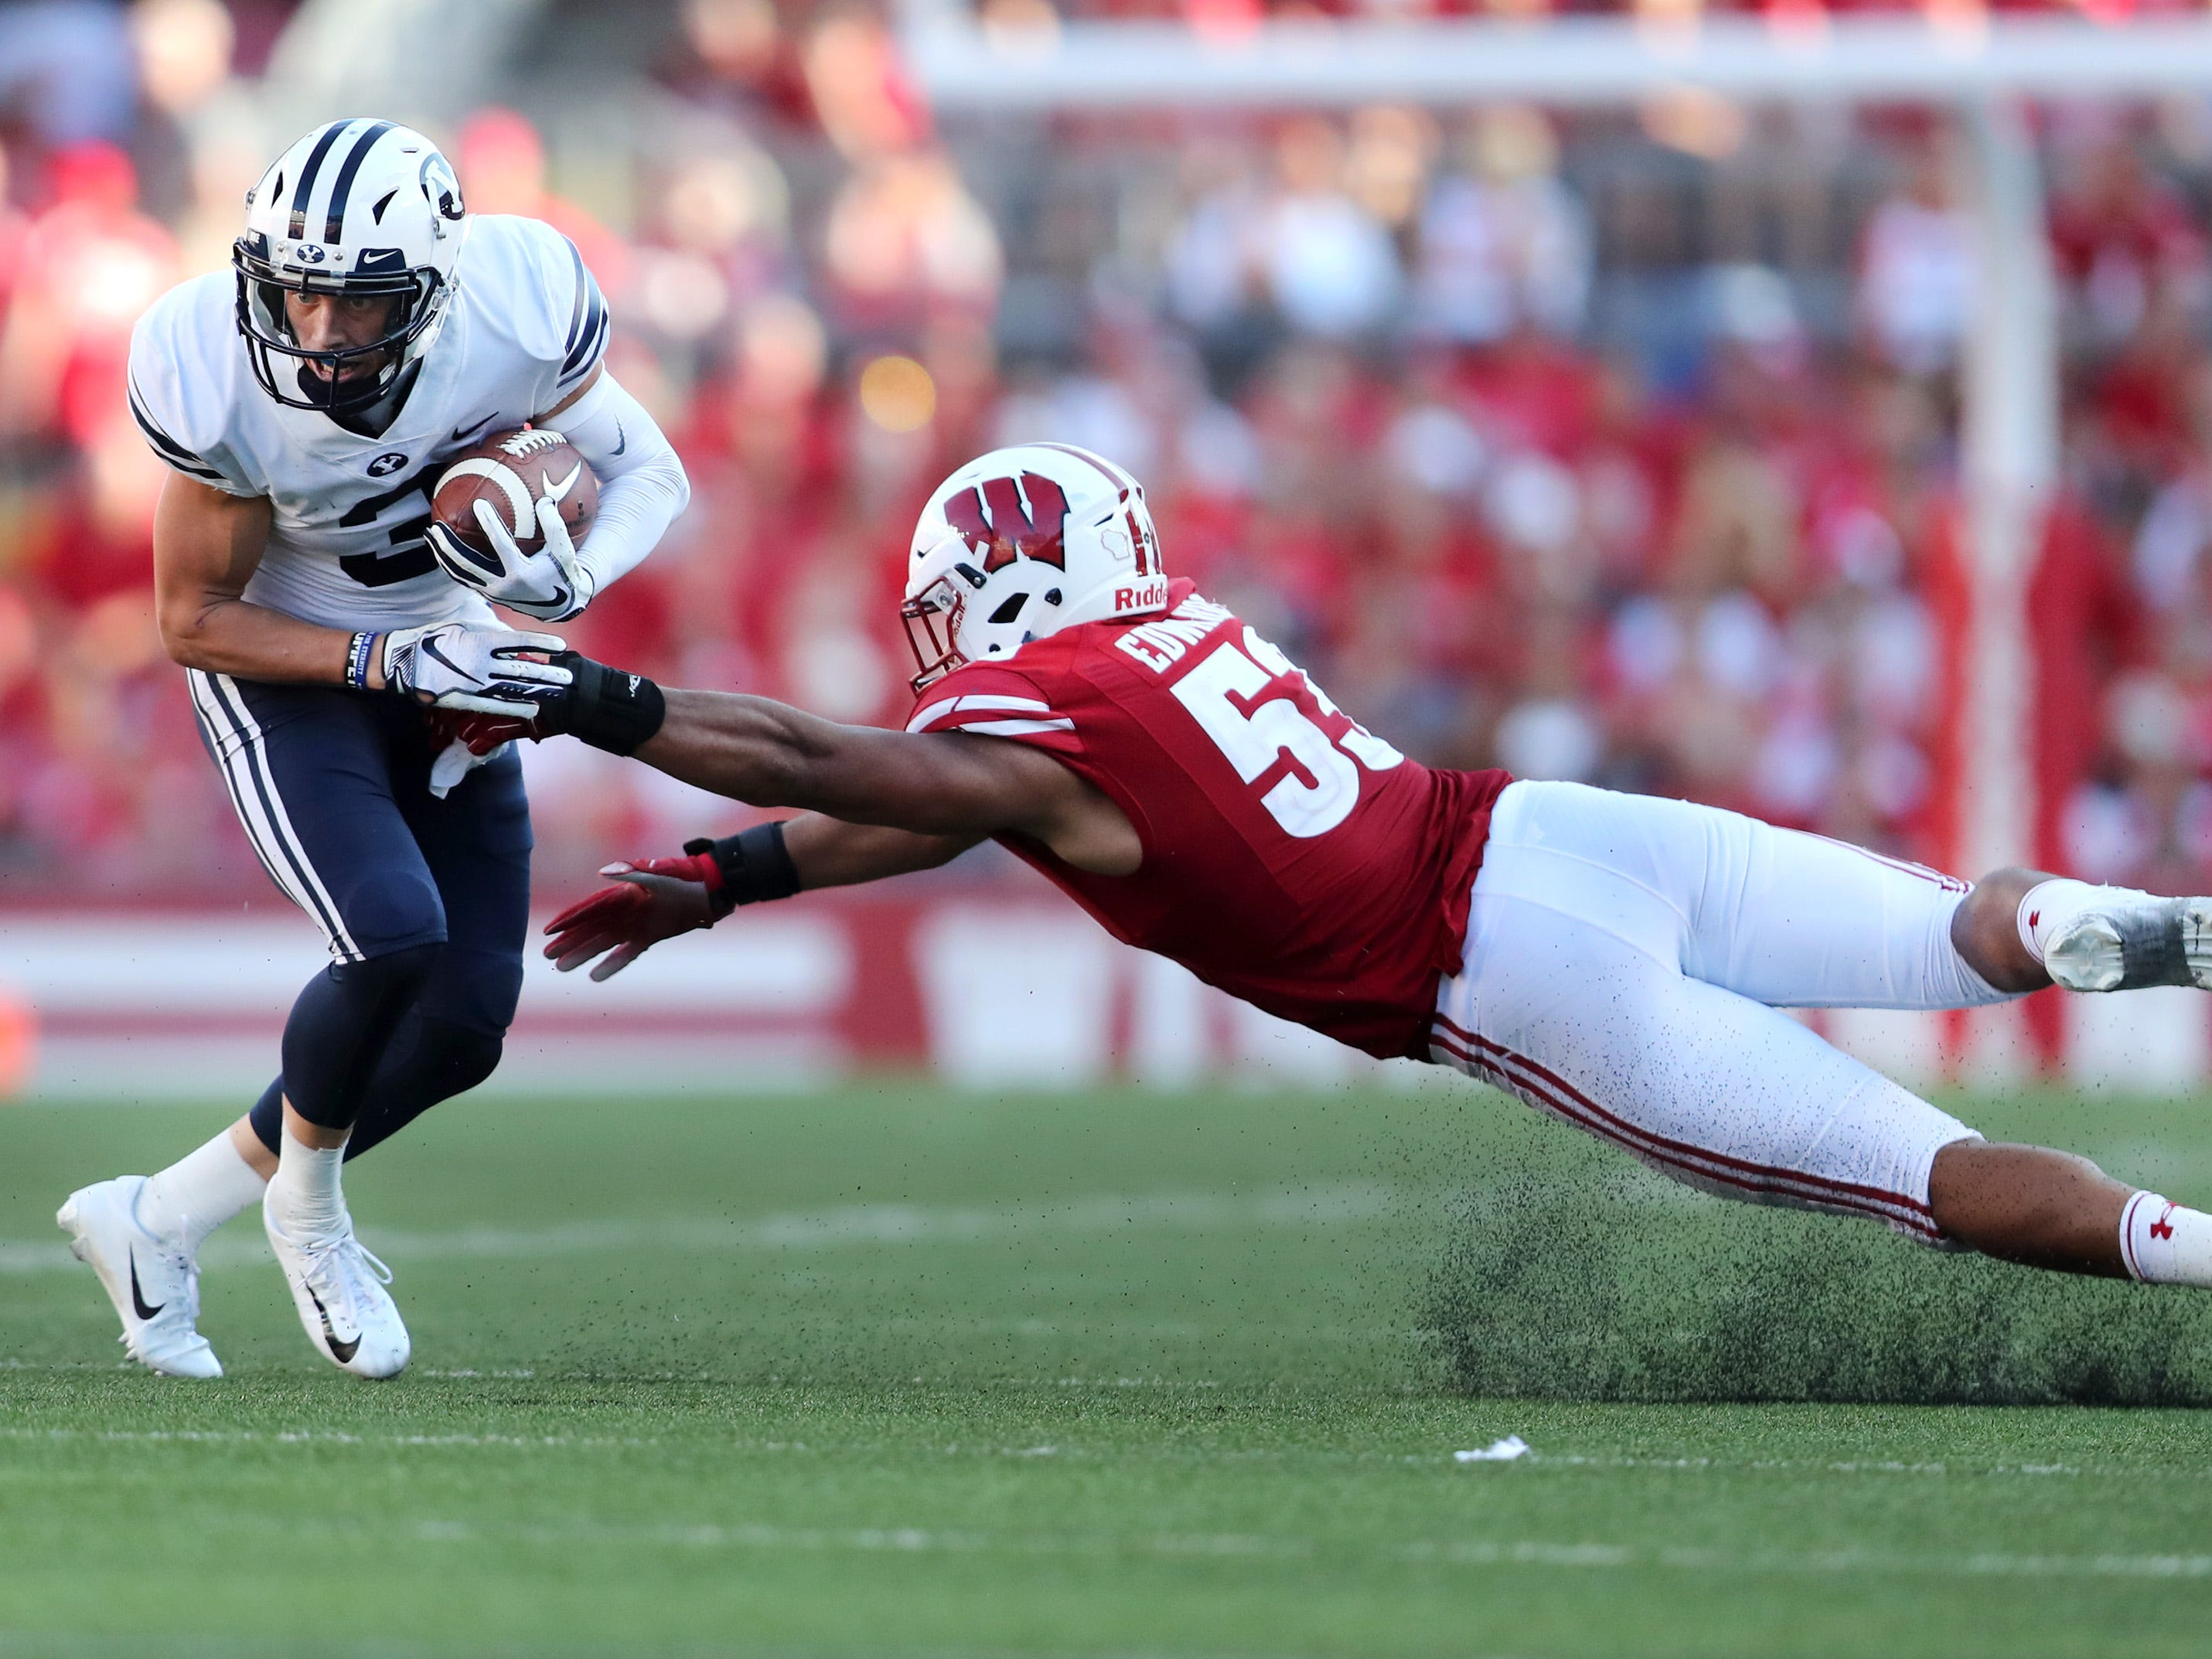 Wisconsin Badgers linebacker T.J. Edwards (53) slips as he tries to tackle Brigham Young wide receiver Dylan Collie.